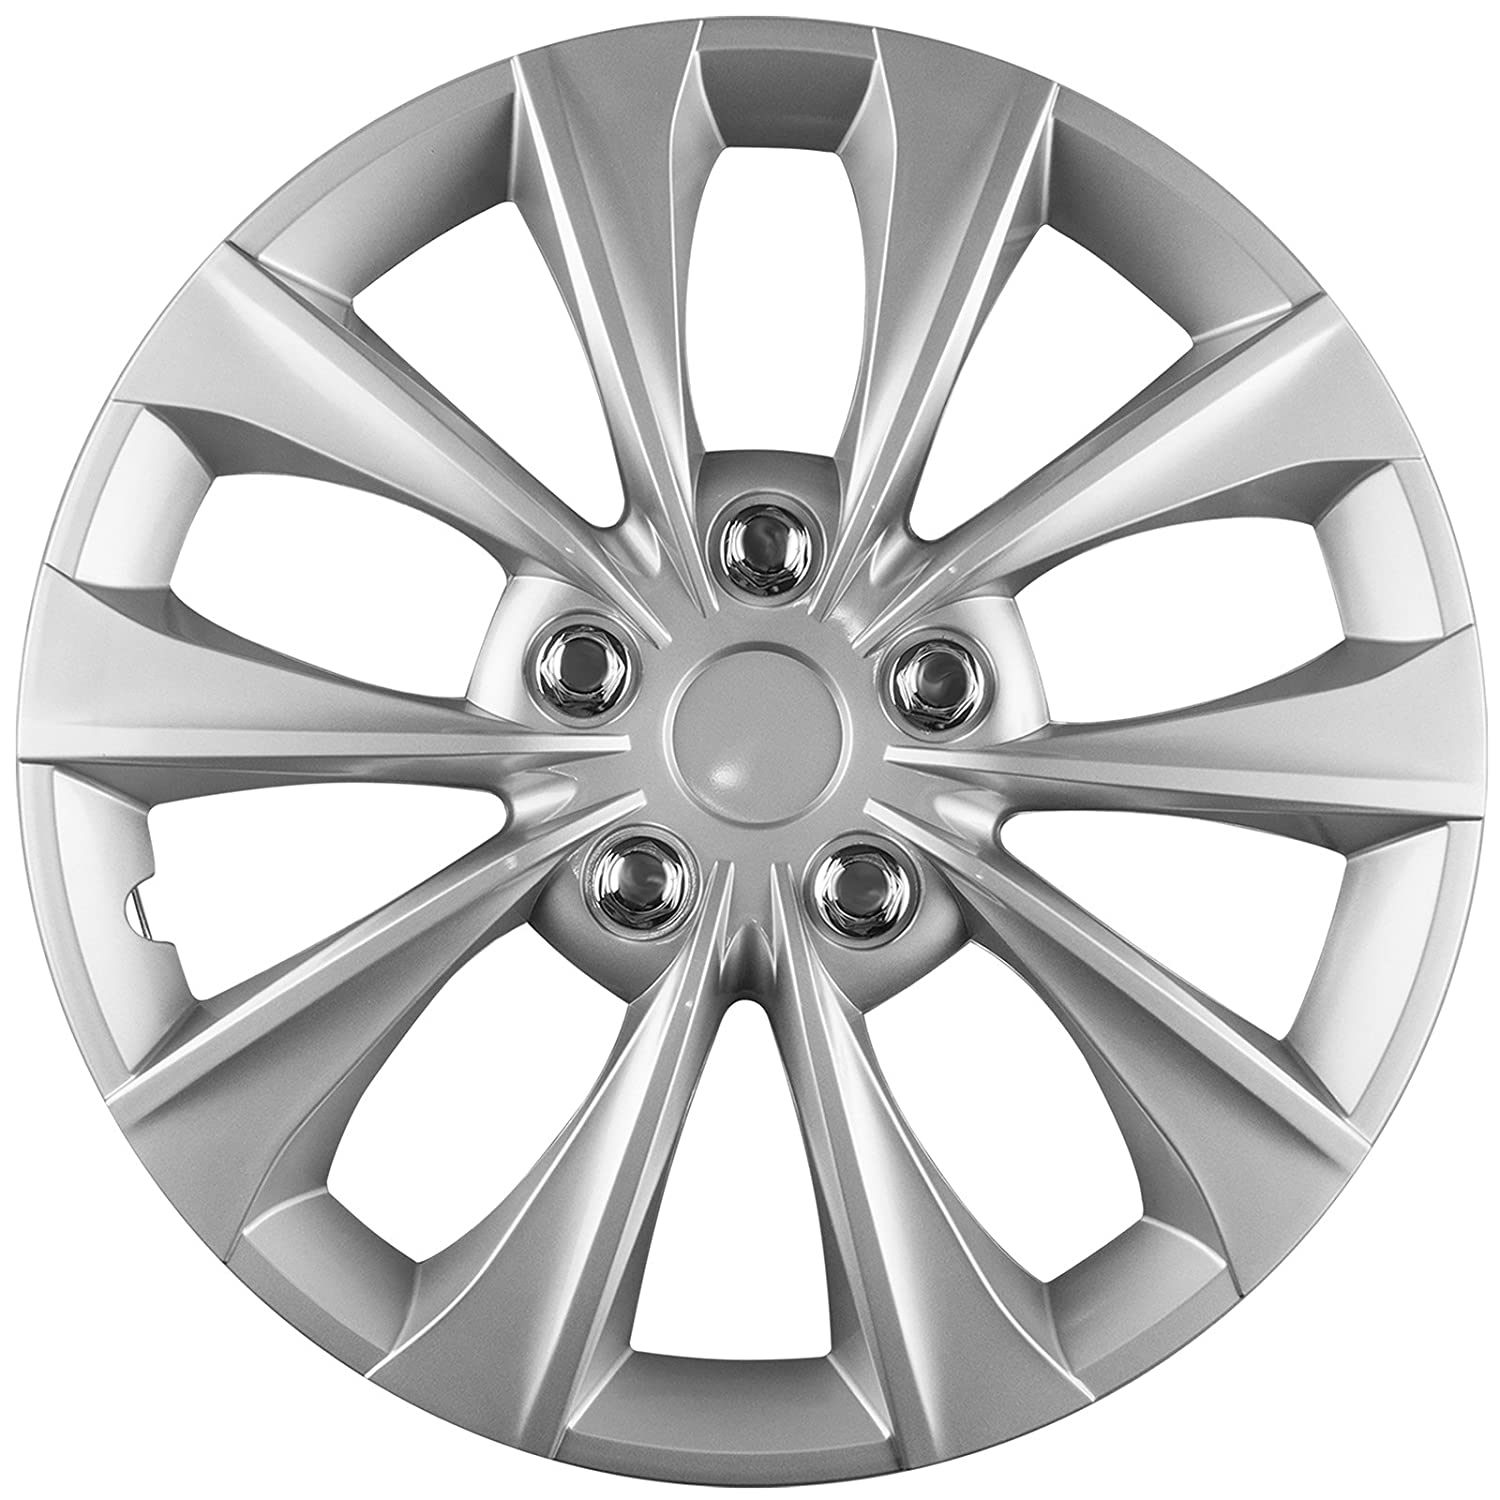 OxGord Hub-caps for 15-19 Toyota Camry /(Pack of 4/) Wheel Covers 16 inch Snap On Silver WCHC-61175-16SL